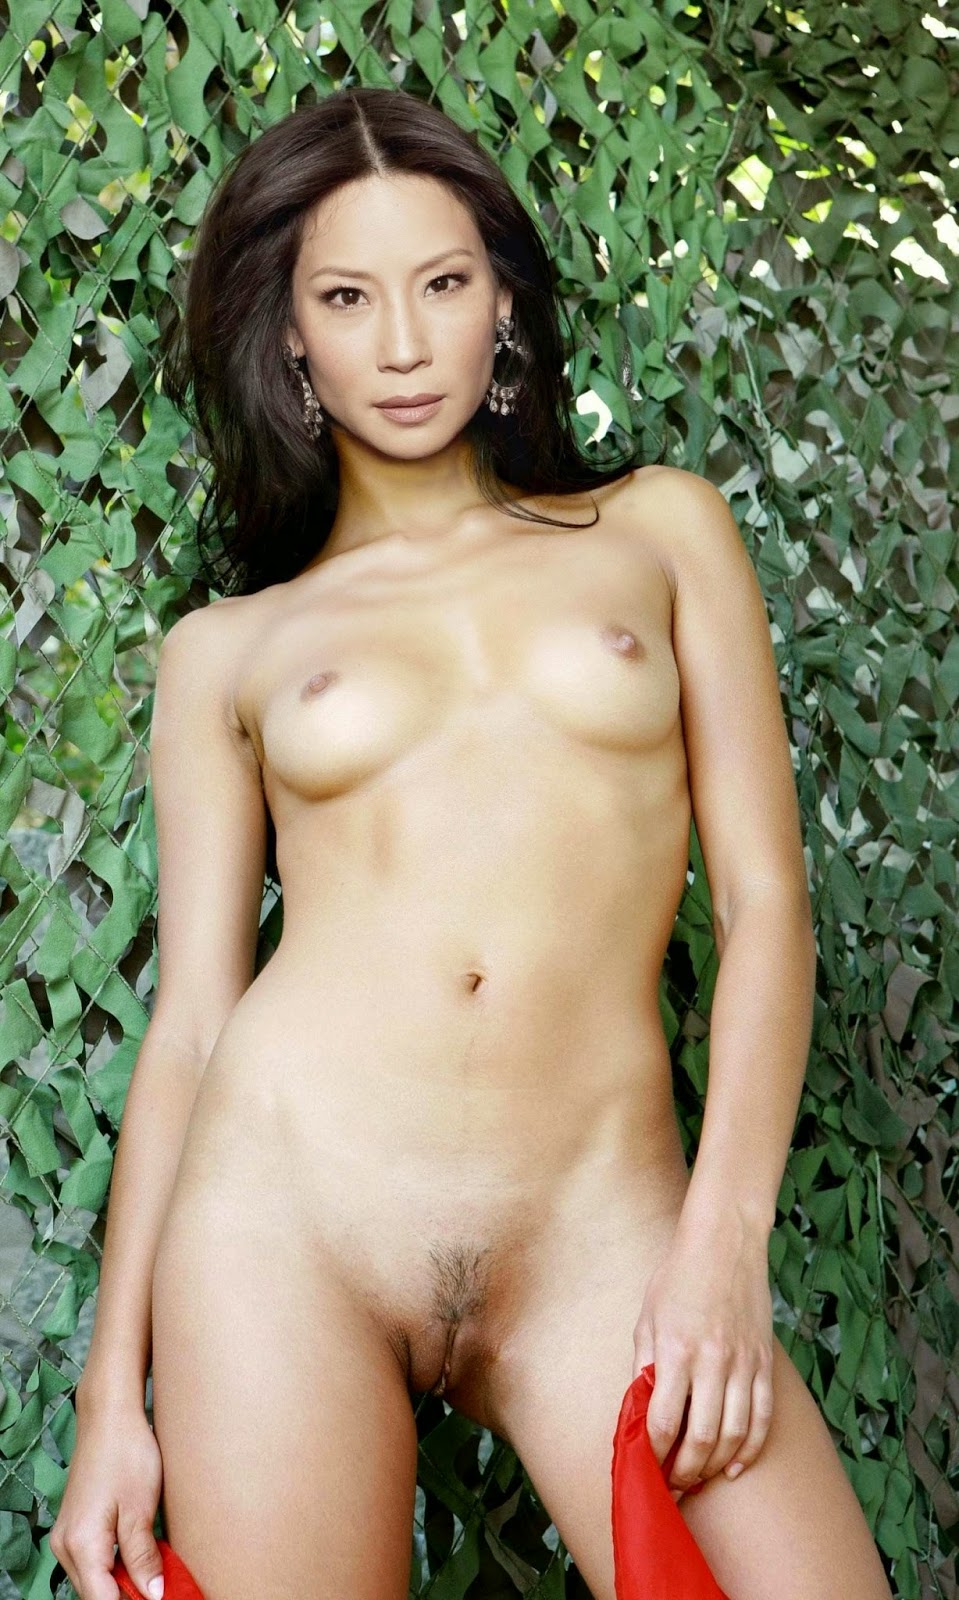 shaved vagina nude preppy women